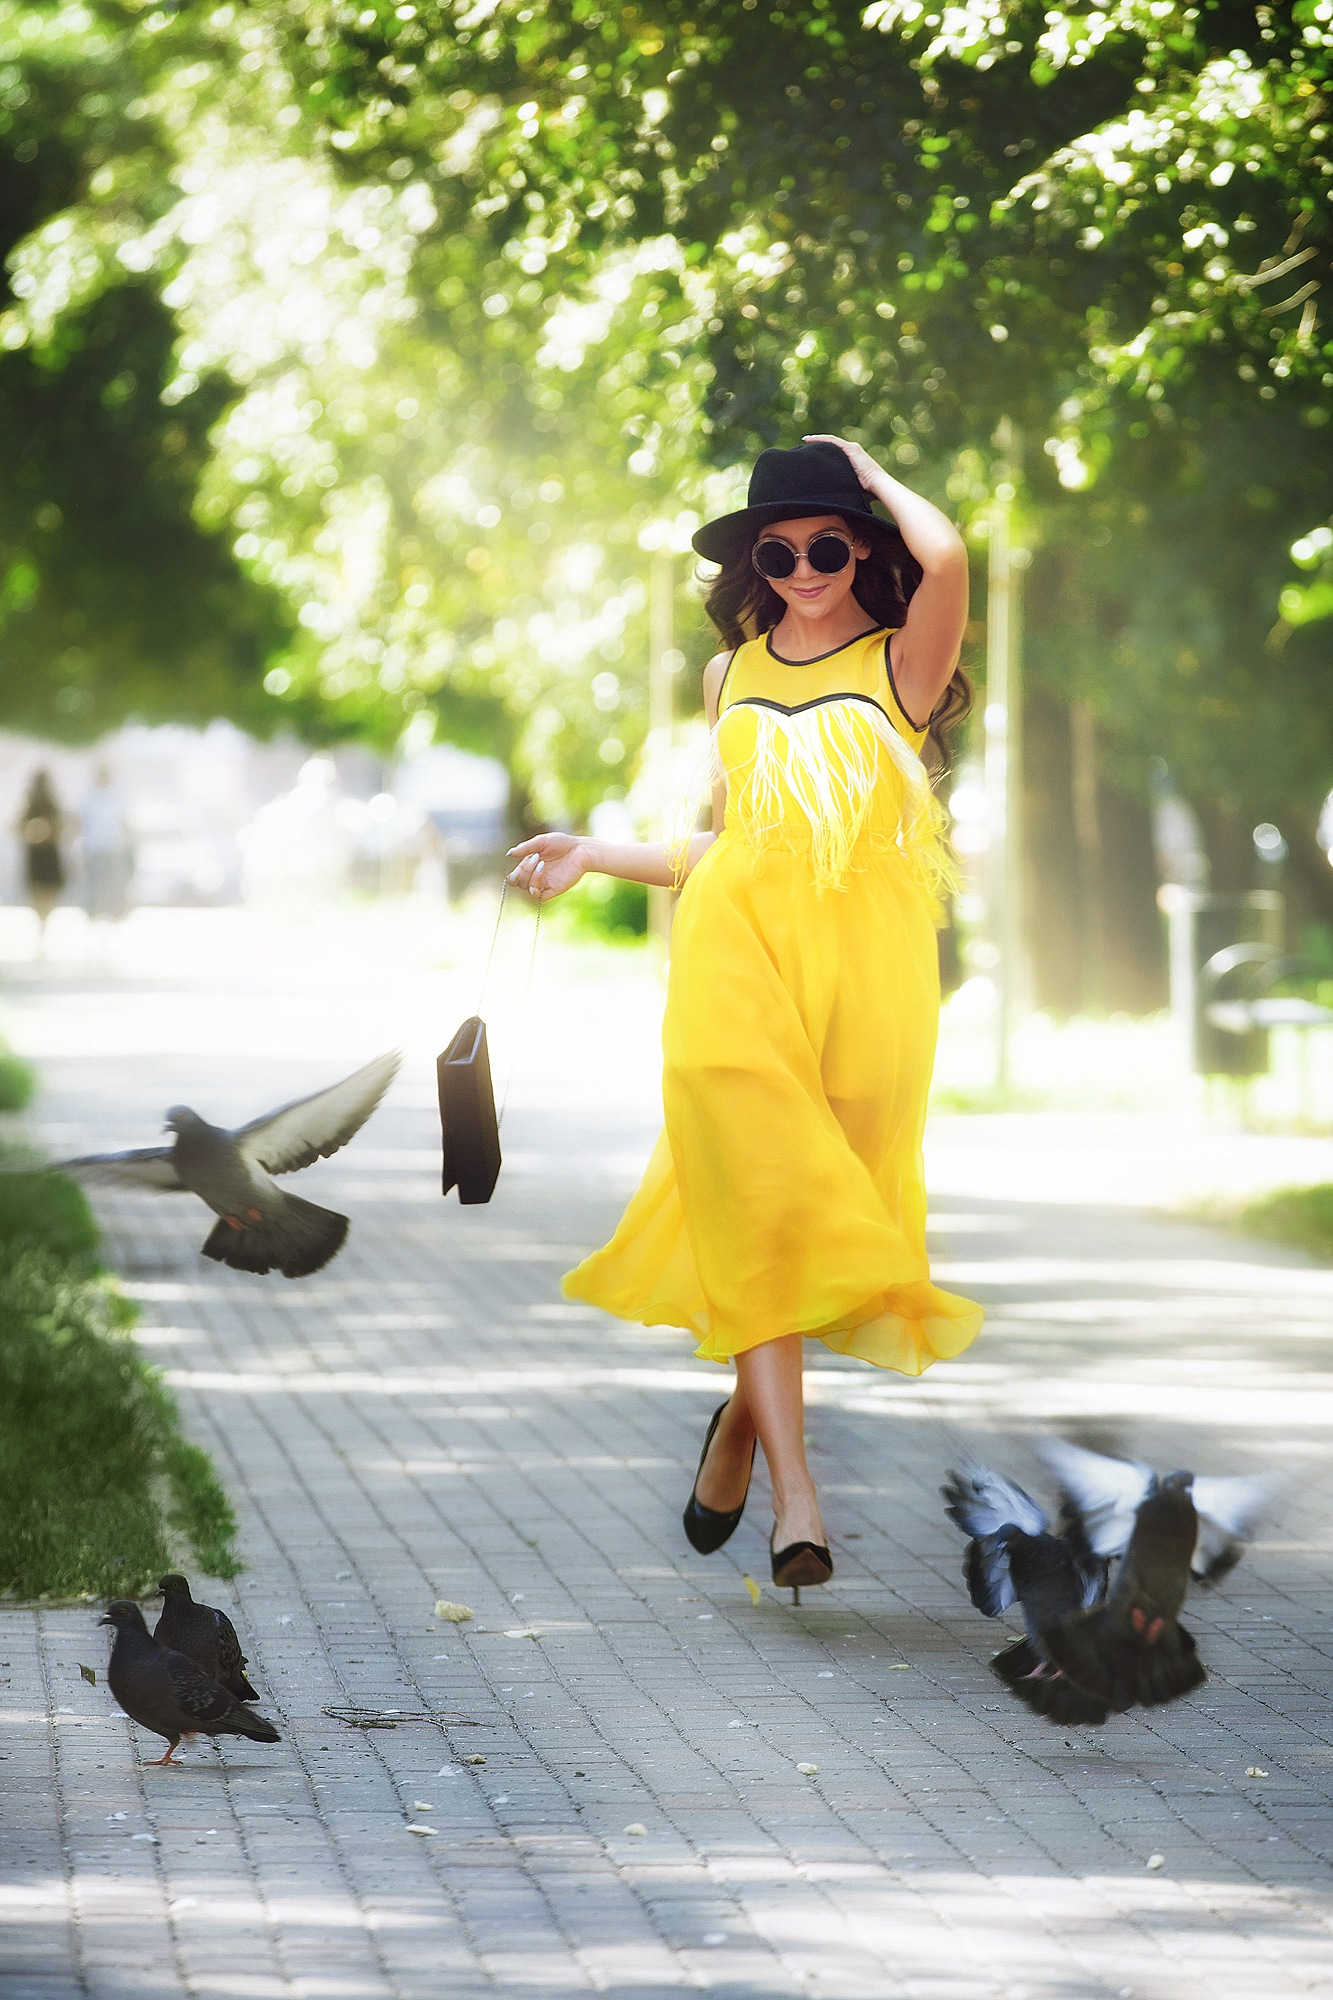 Summer. Lady in Yellow by Pavel Skvortsov